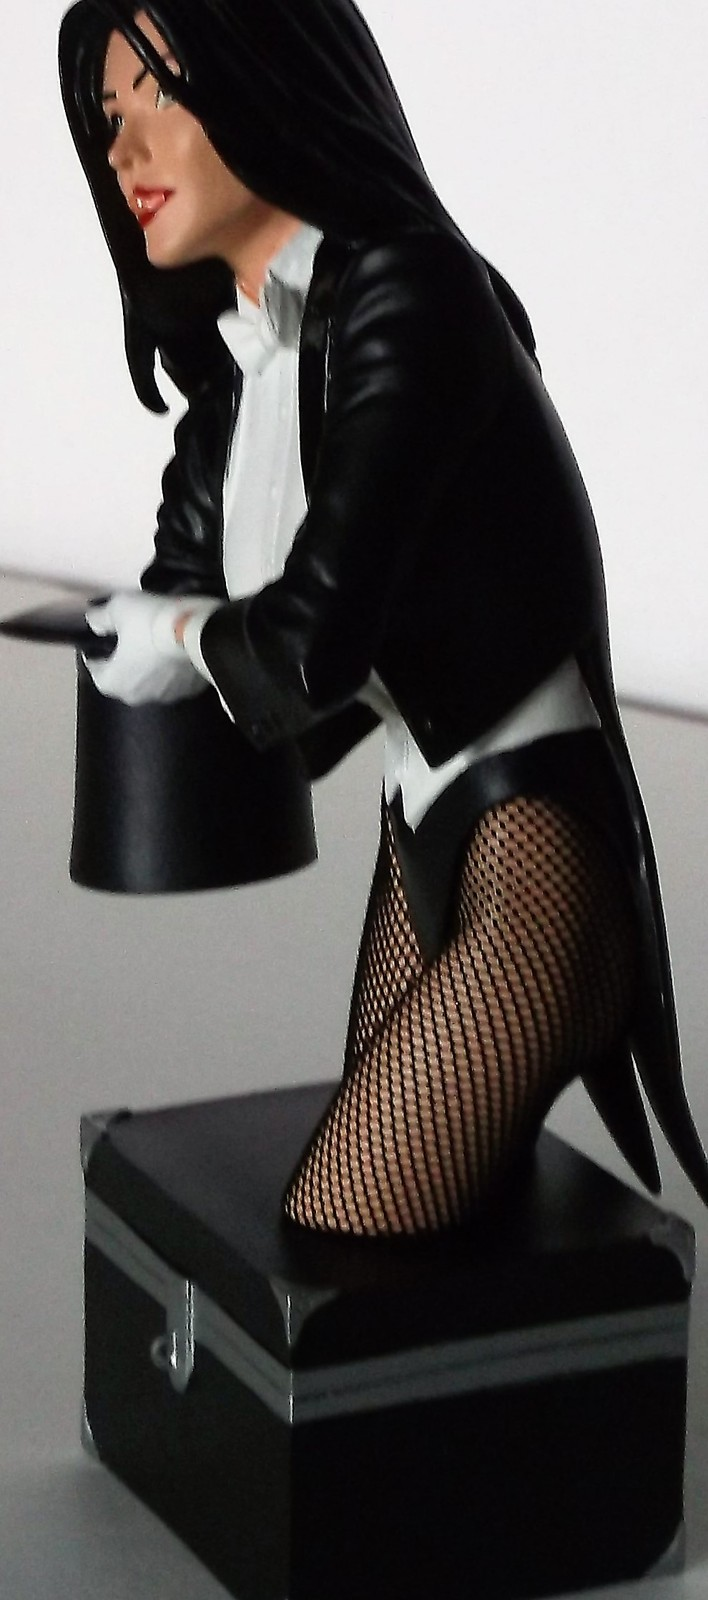 DC Direct Women Of The DC Universe Zatanna Hand Painted Cold Cast Porcelain Bust